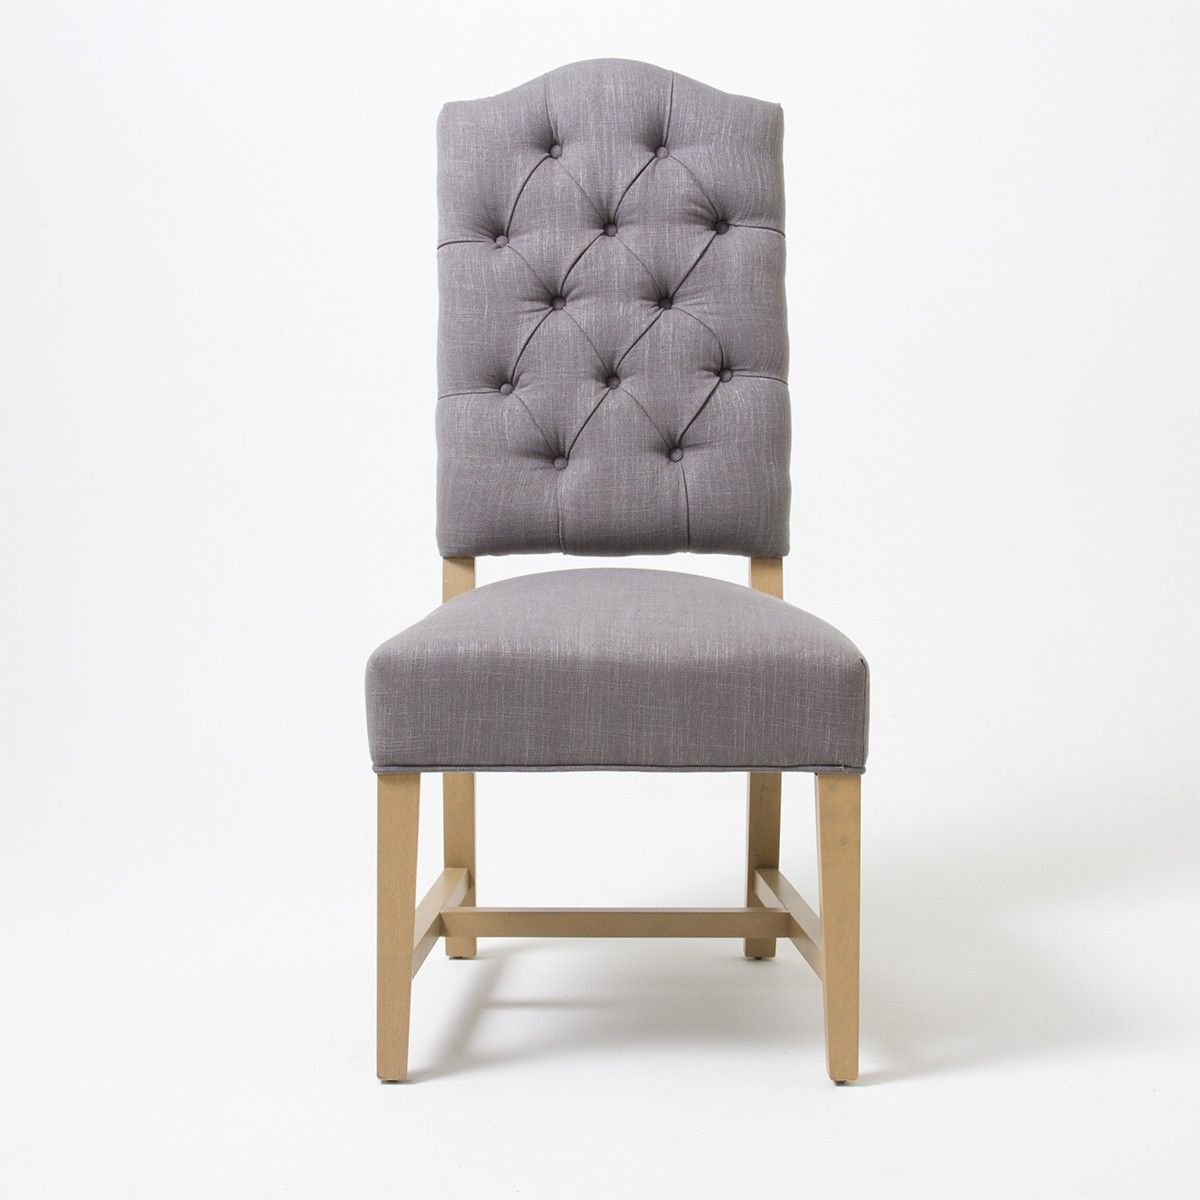 Chair Furniture Emporium jasper side chair with tufting $129 each wicker emporium | diys